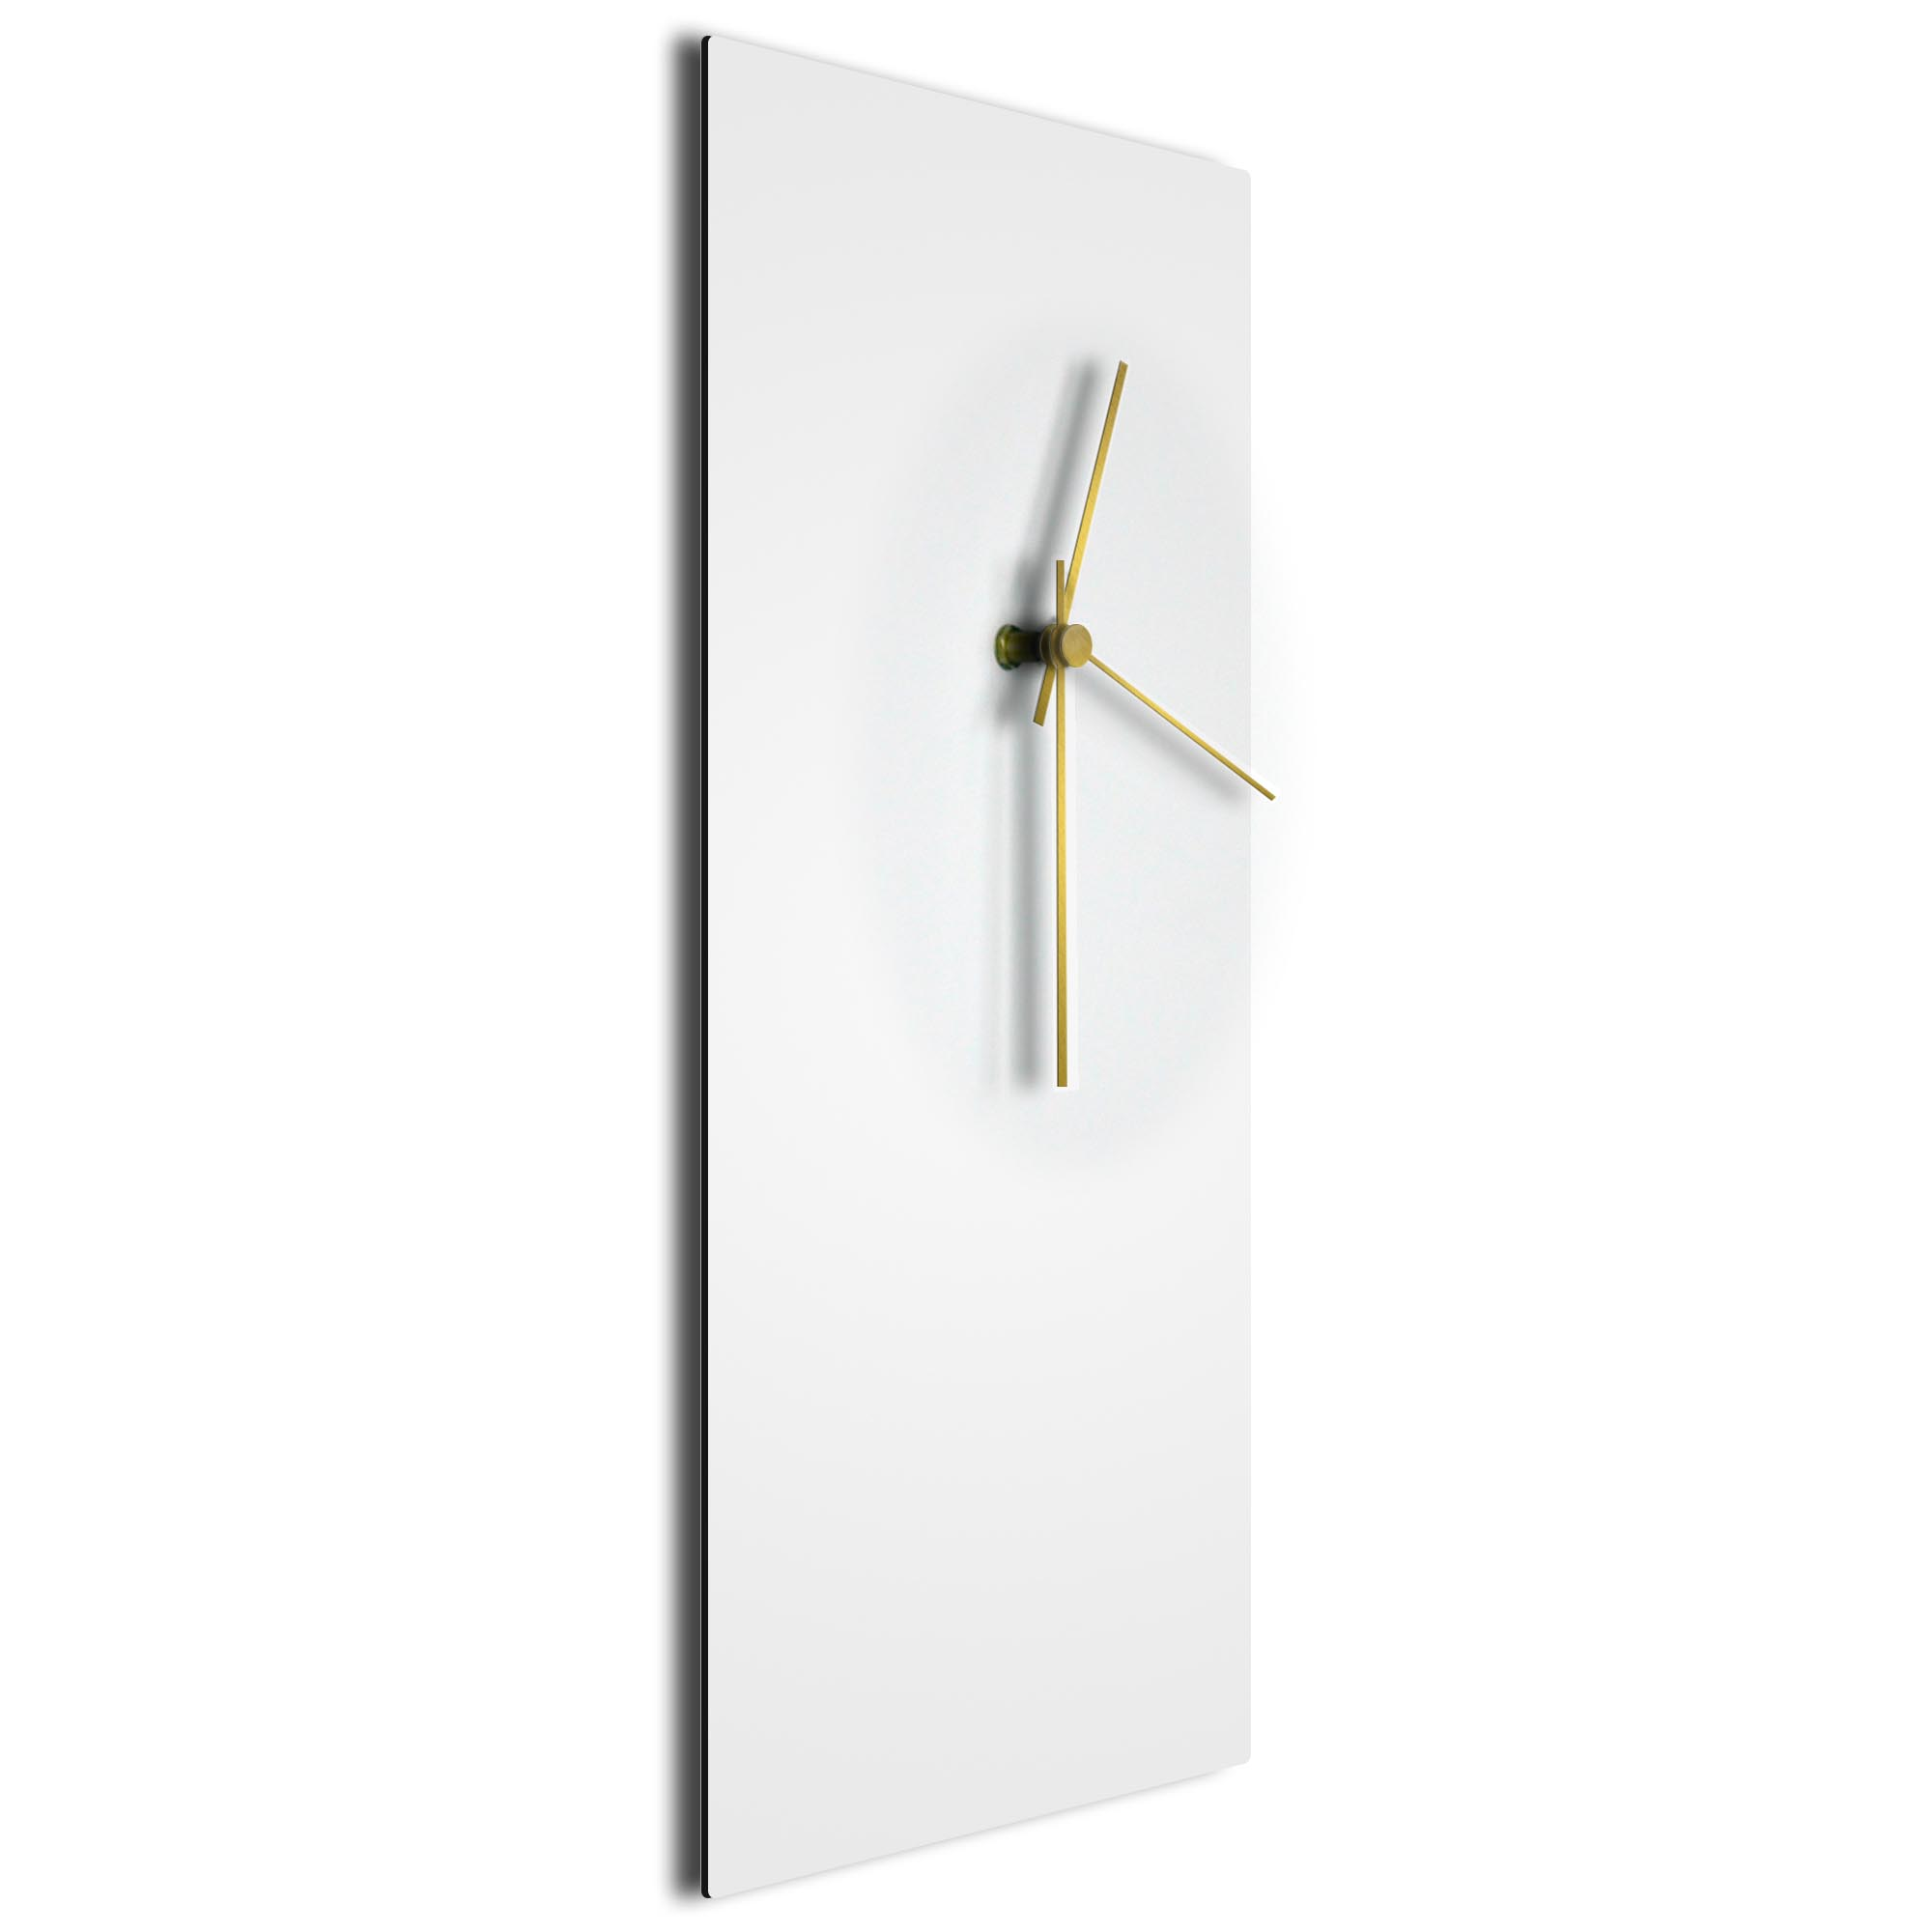 Whiteout Gold Clock - Image 2